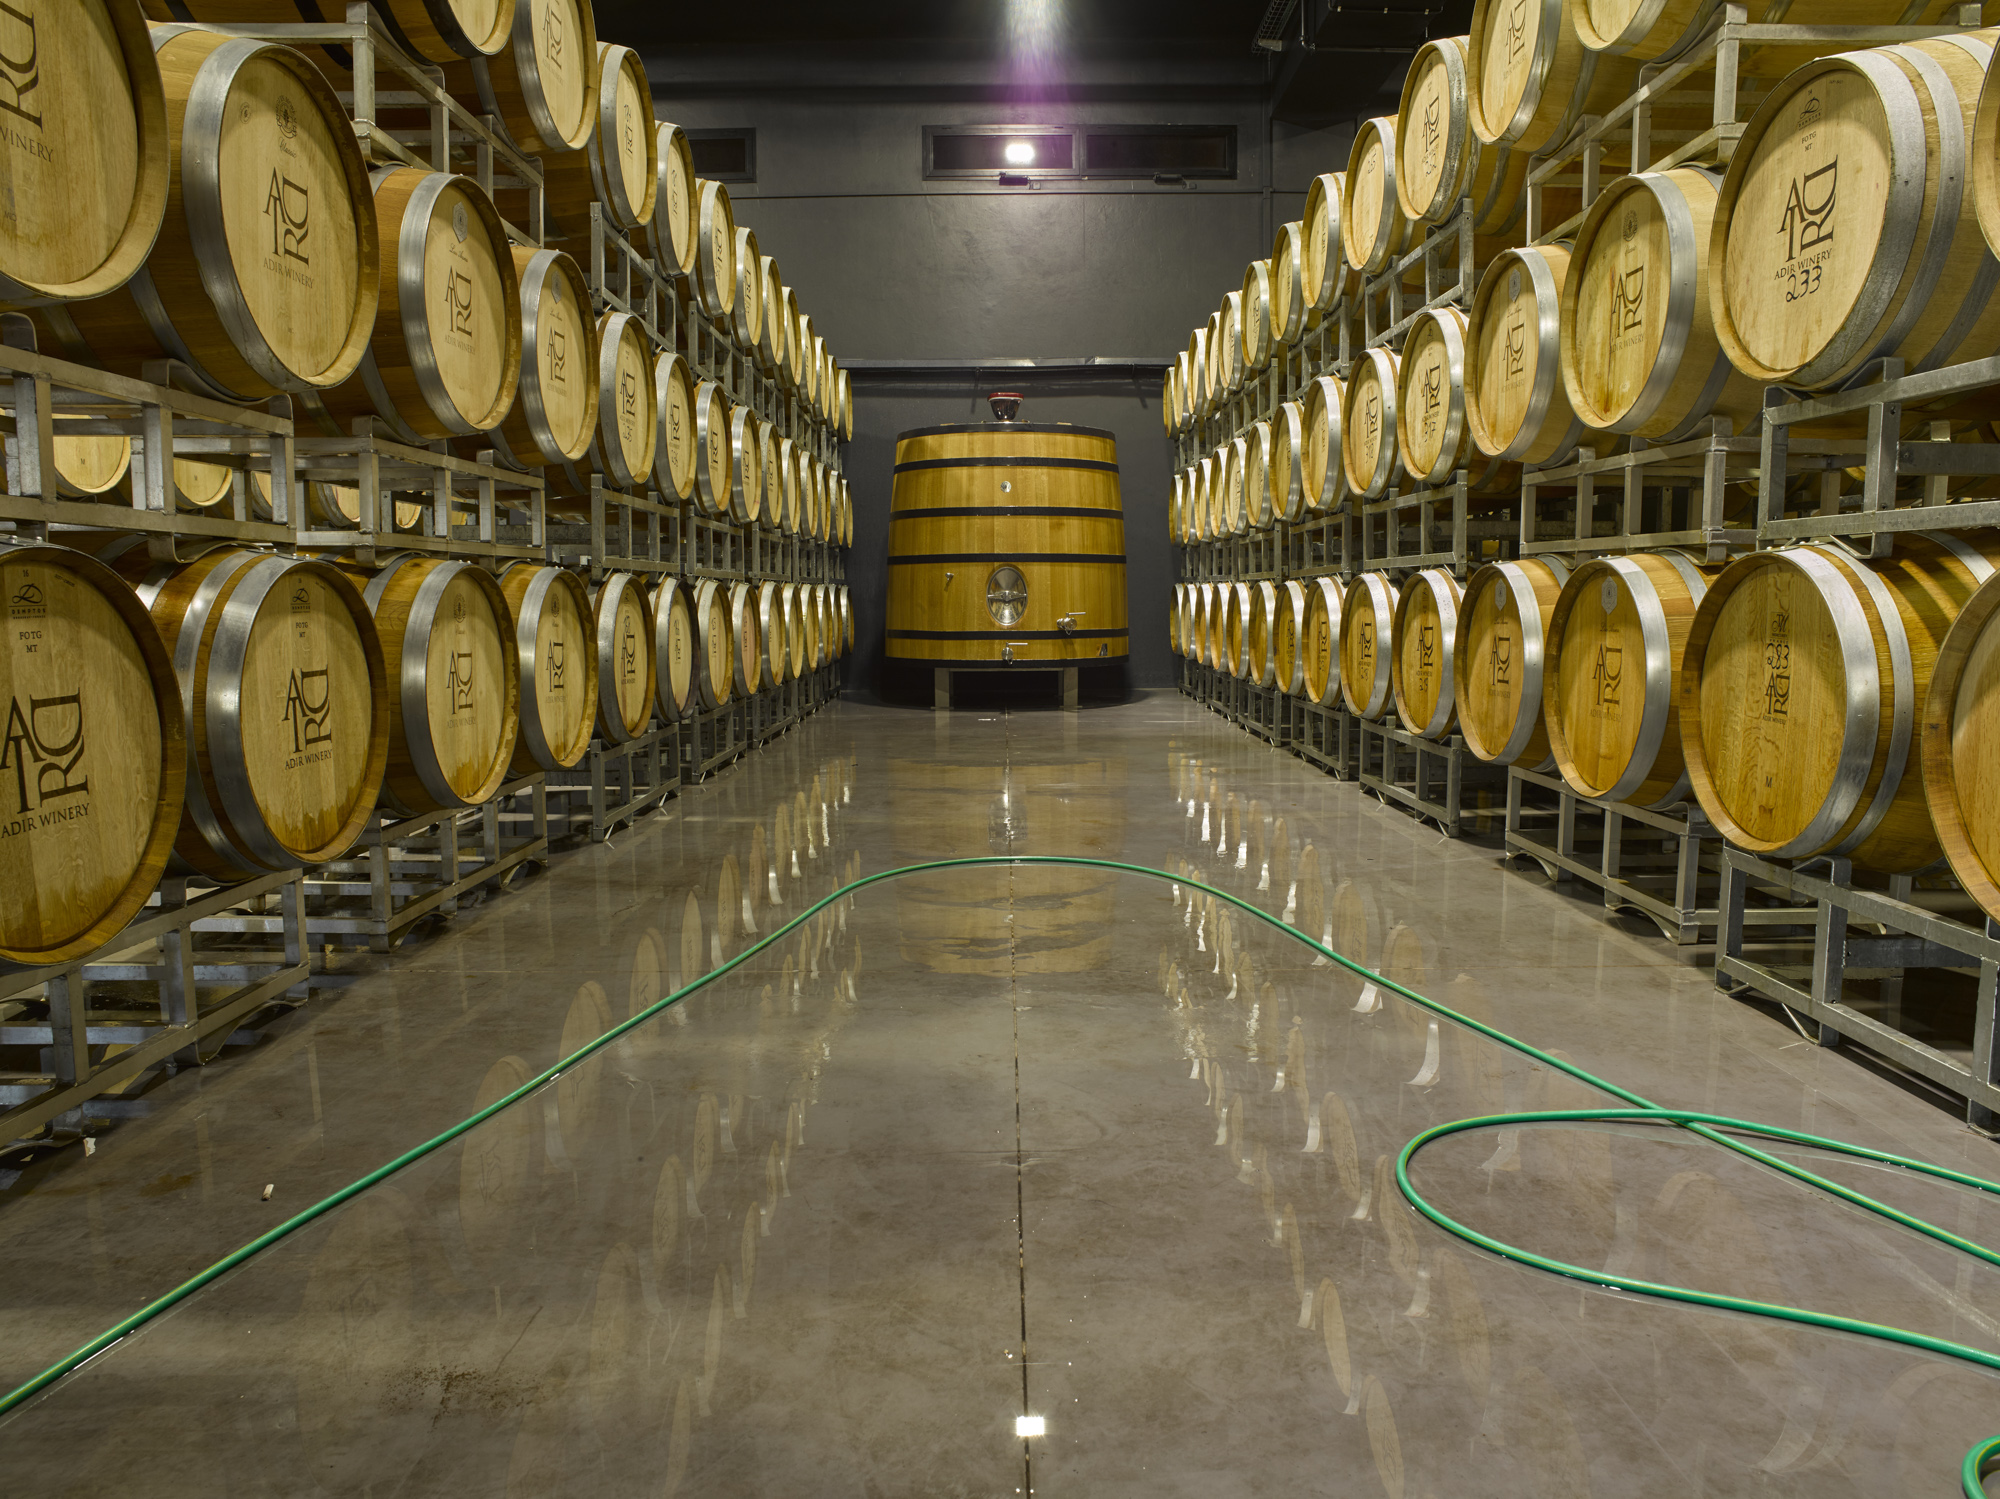 Wine barrels - Galil, February 2017